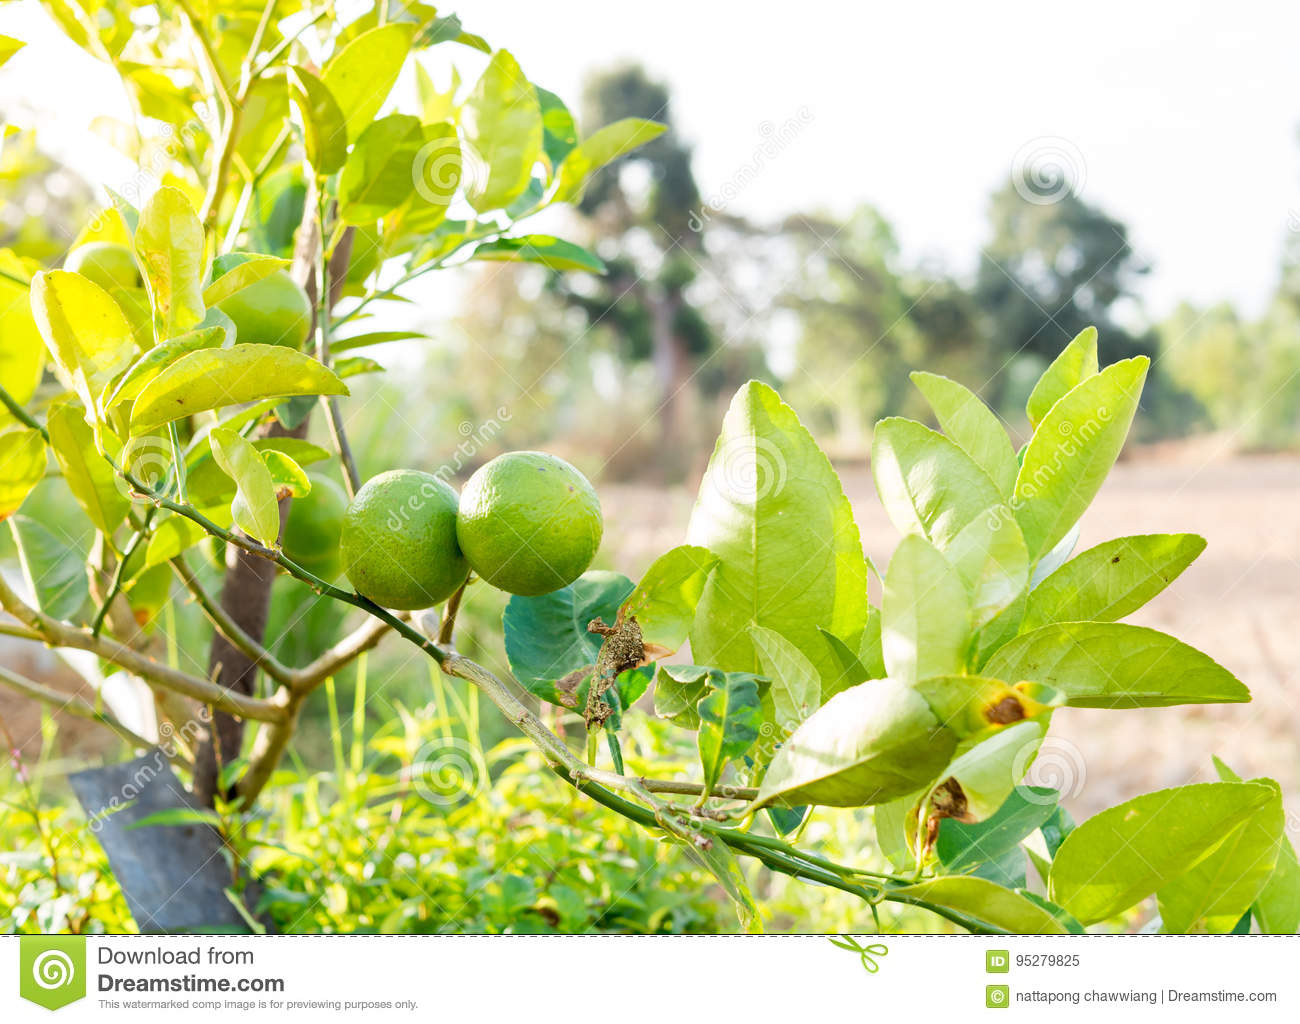 Green Lemons tree in the garden